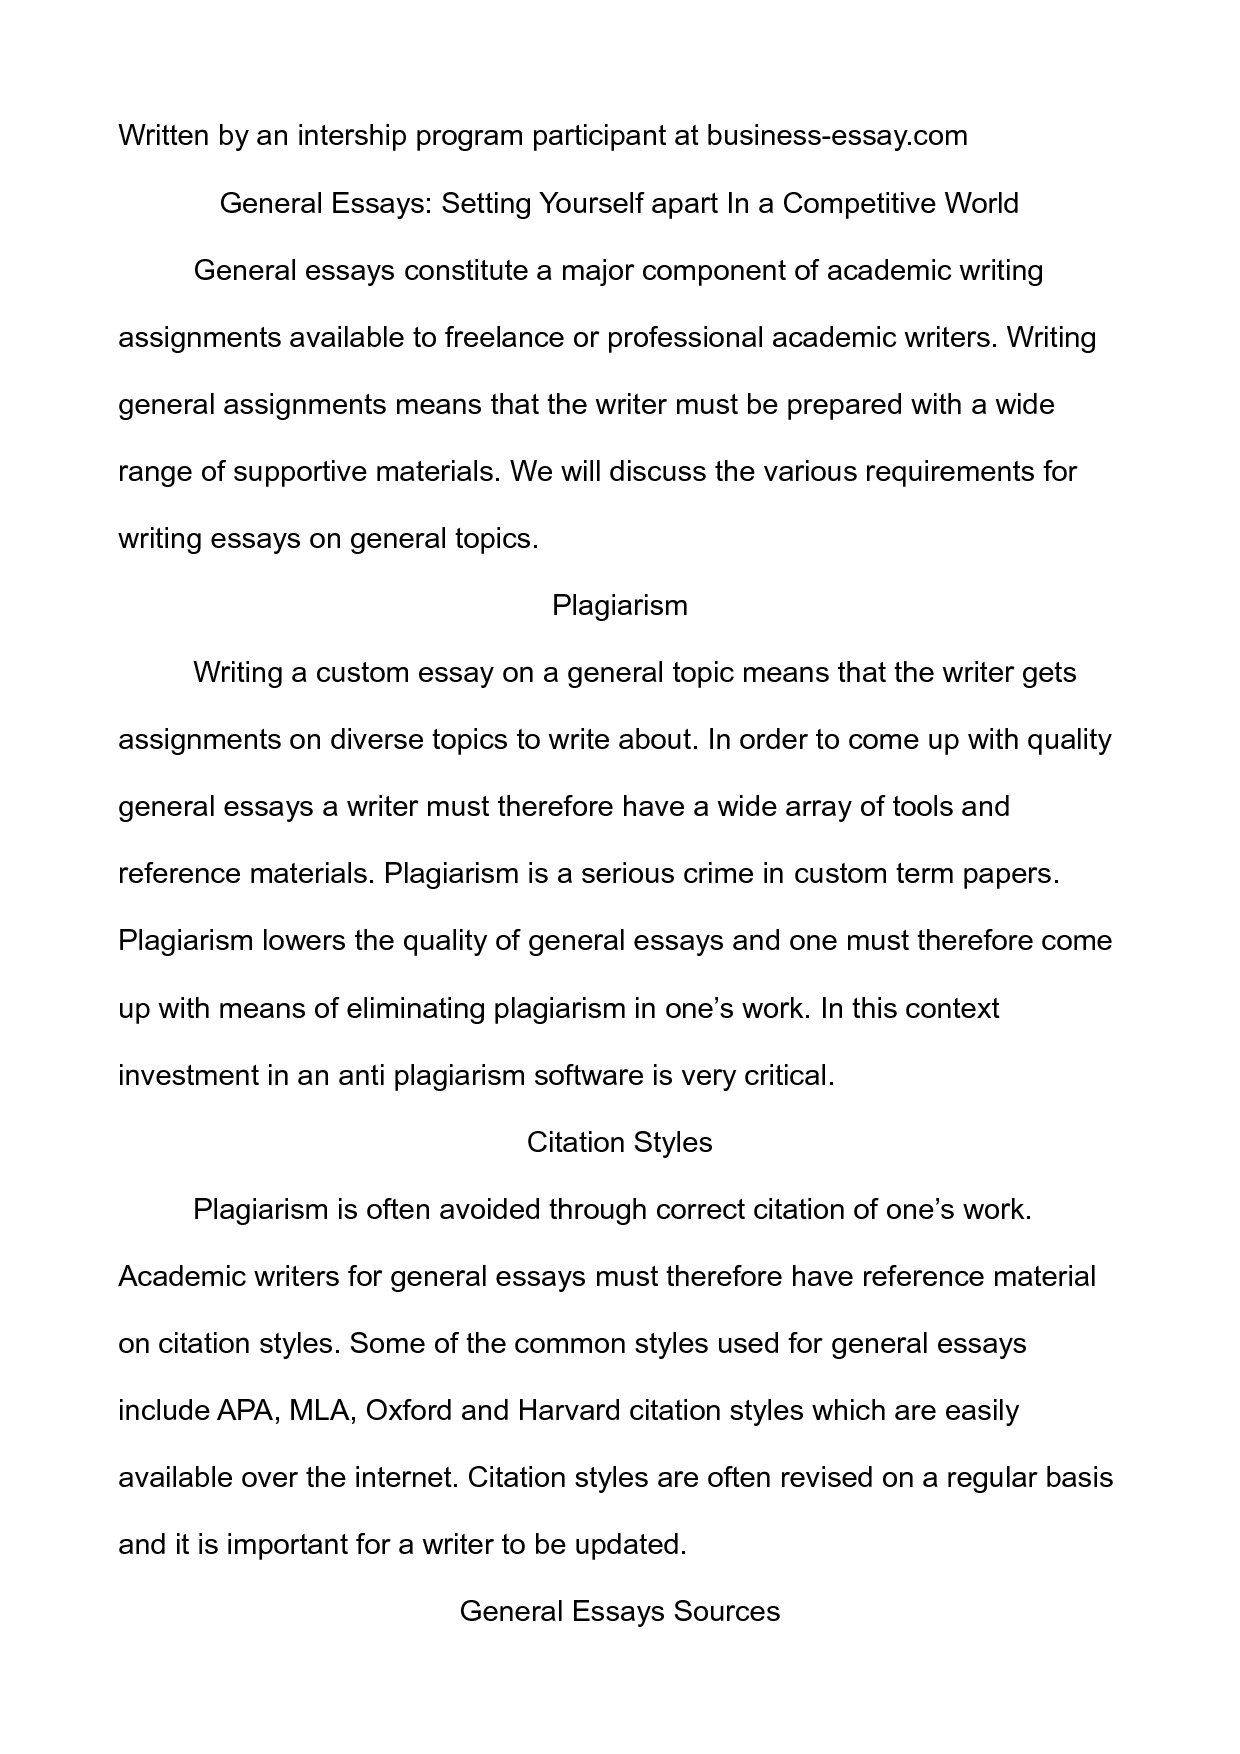 016 Essay Example Pretty Describe Myself Sample Spm Template Fearsome About On In French With English Translation Introduction Full